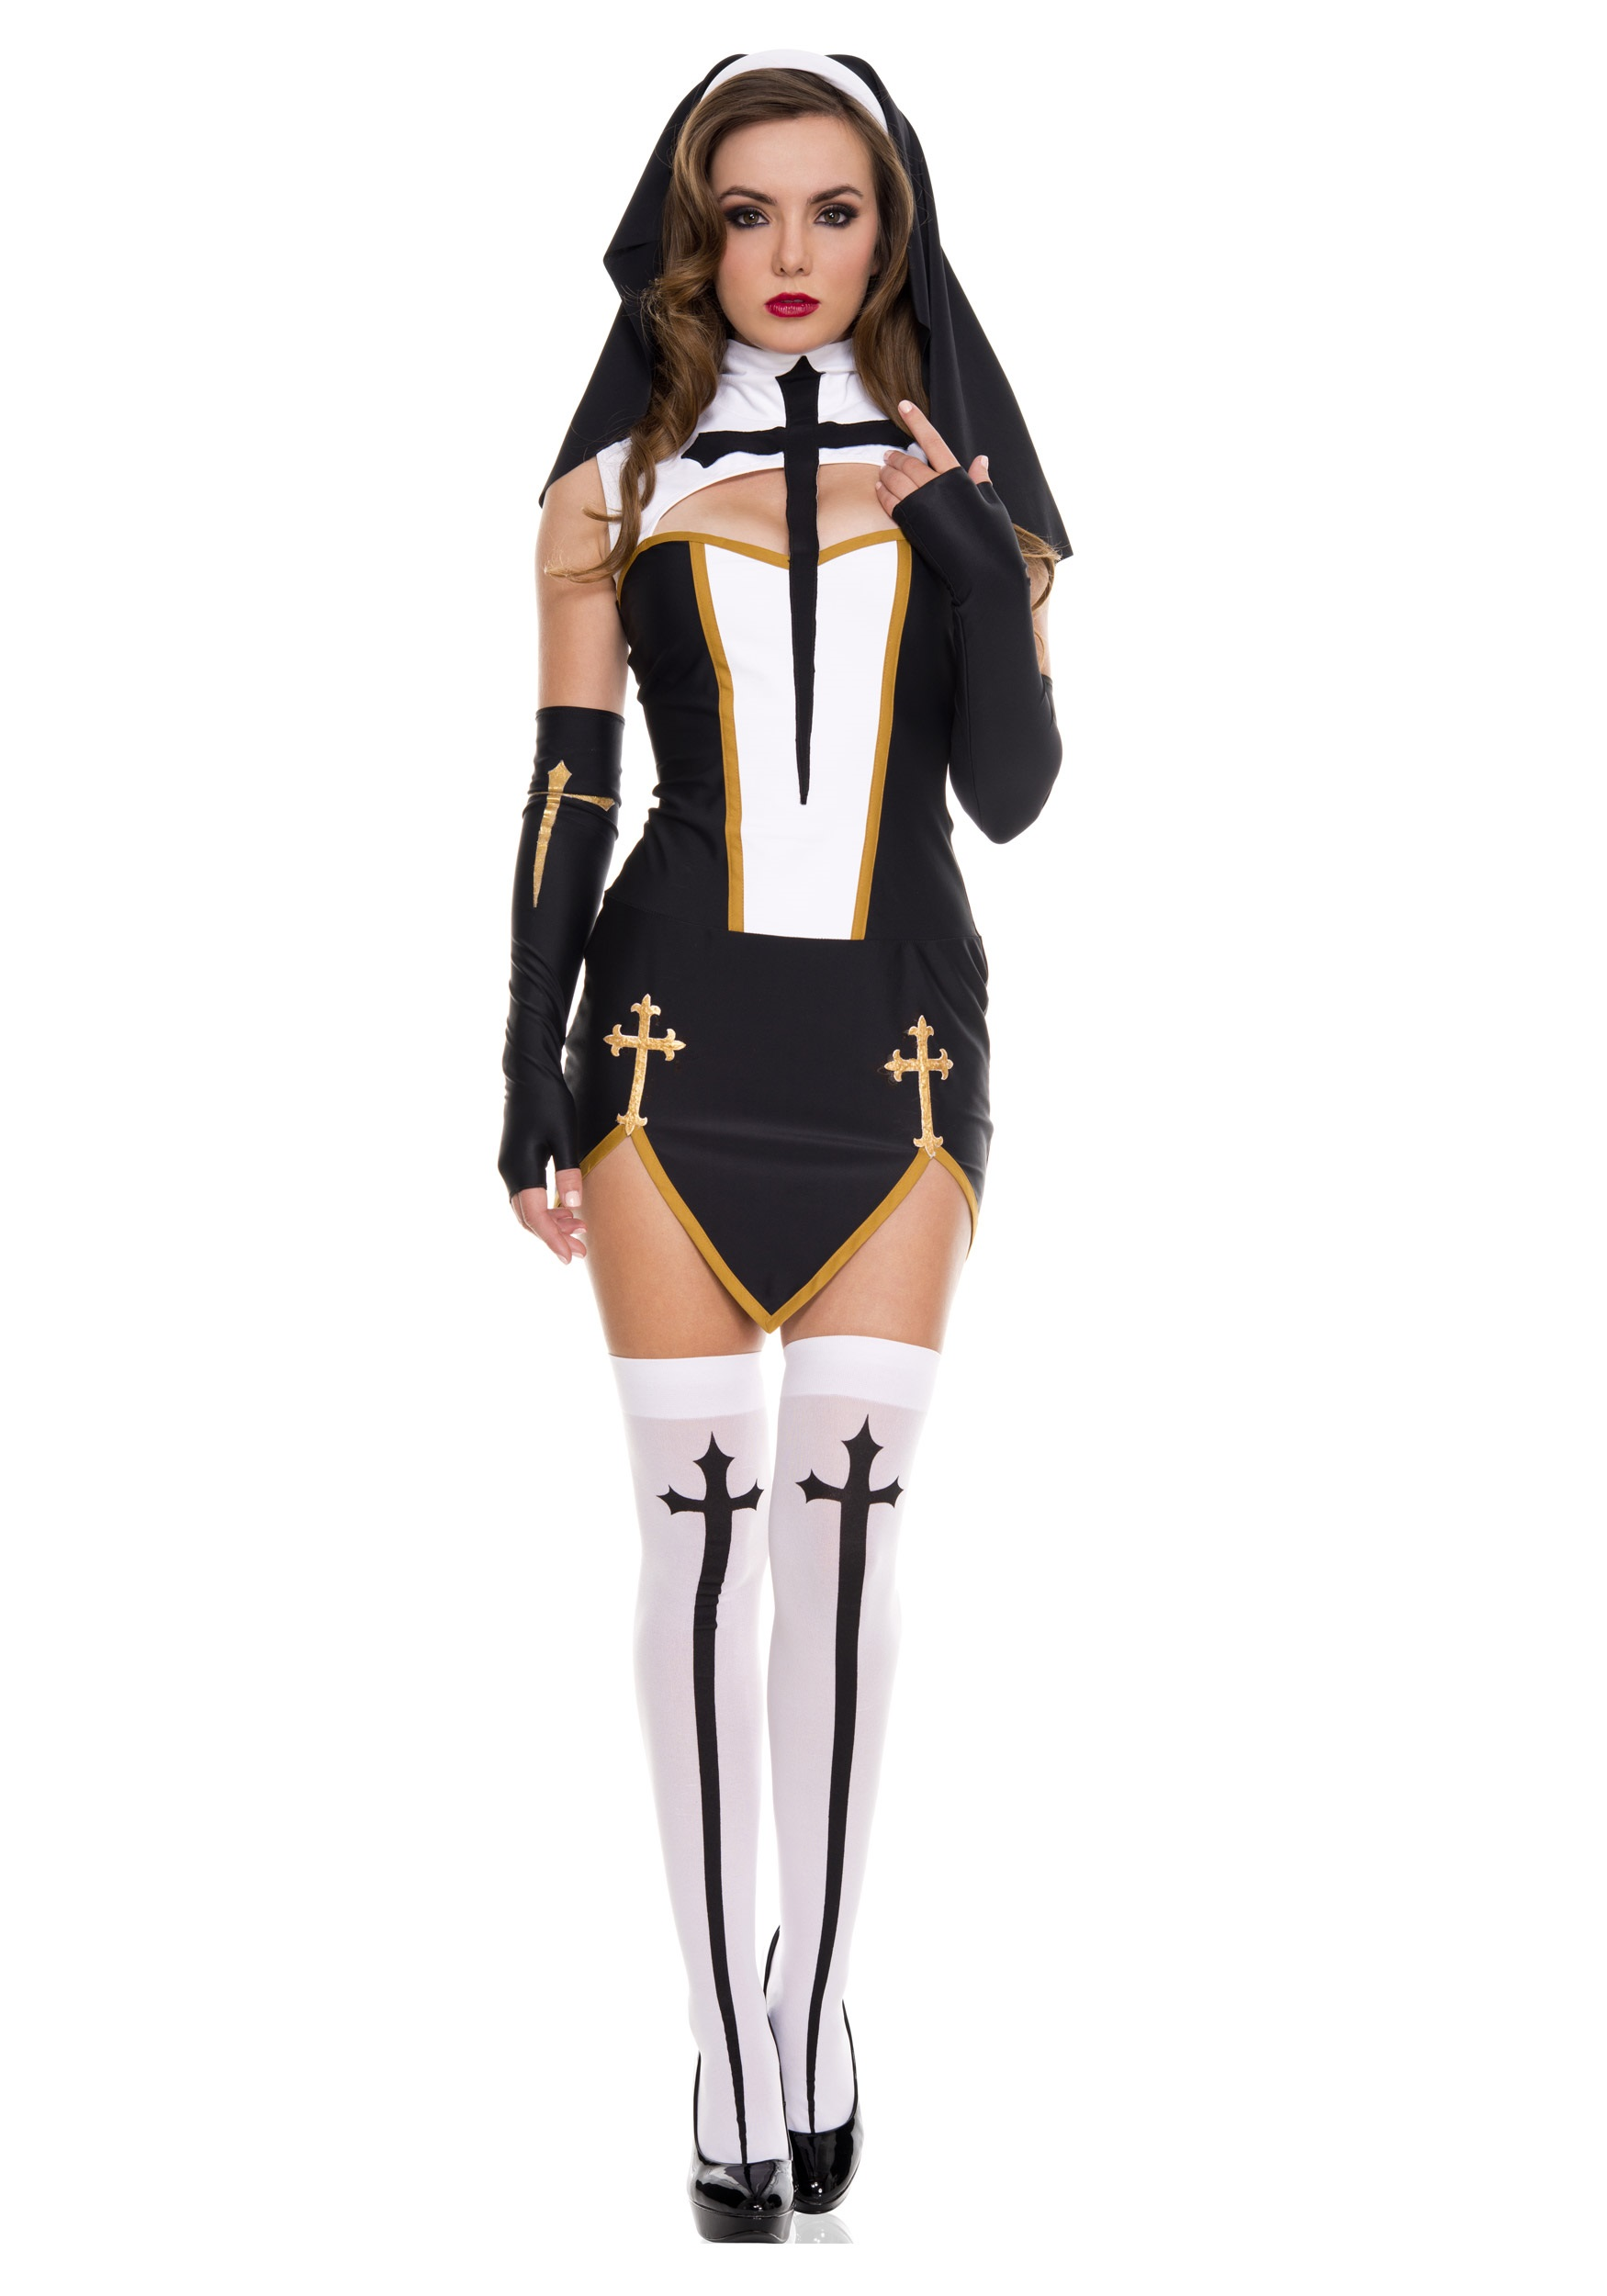 bad habit nun costume - halloween costume ideas 2018